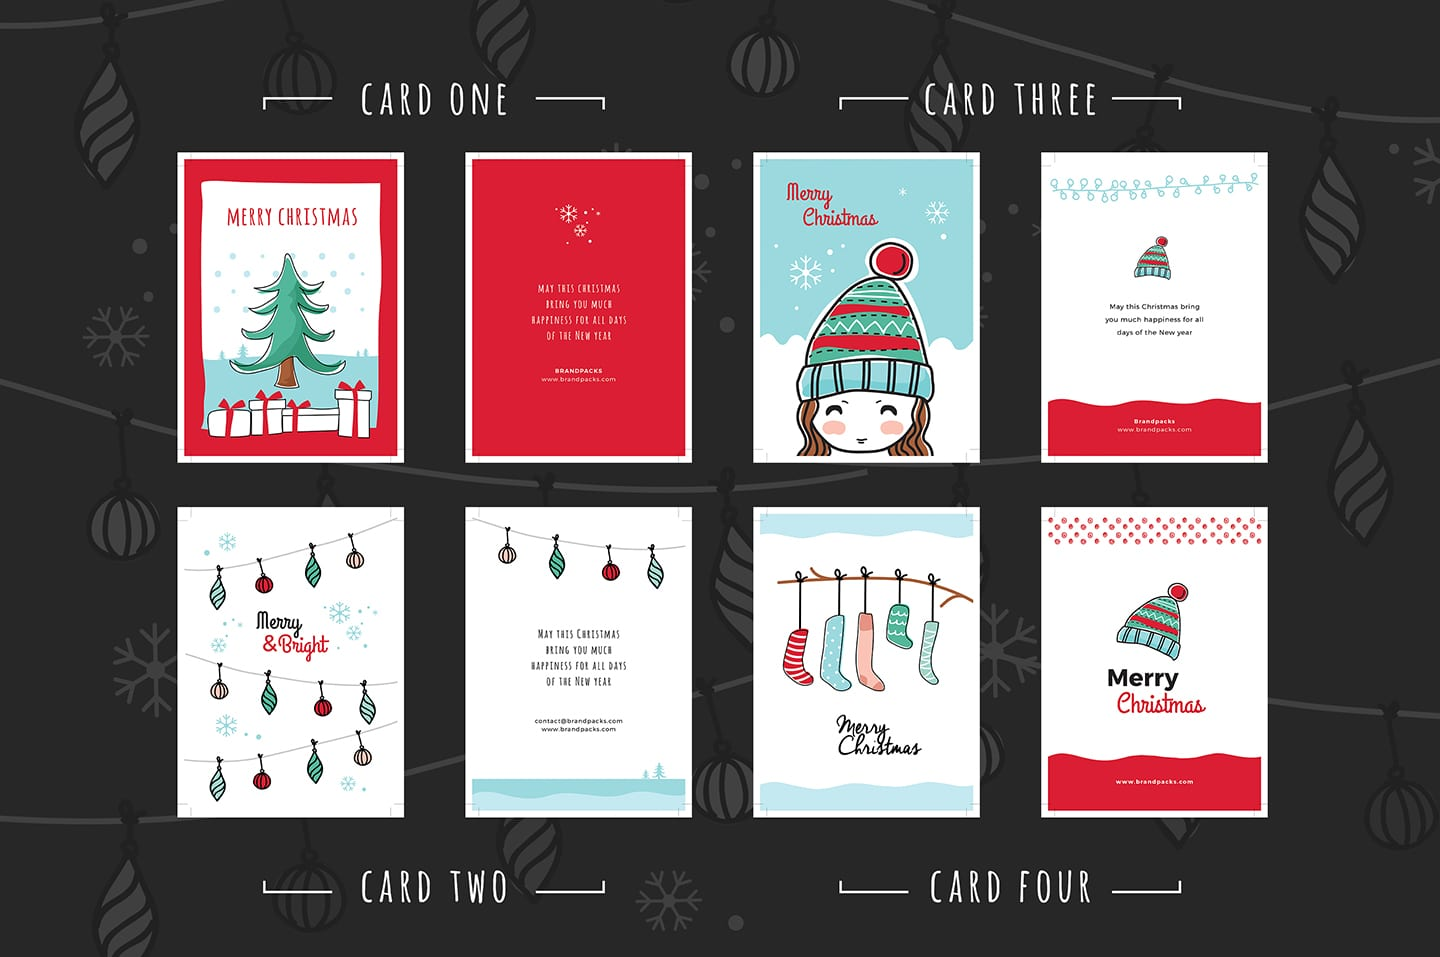 Free Christmas Card Templates.Free Christmas Card Templates For Photoshop Illustrator